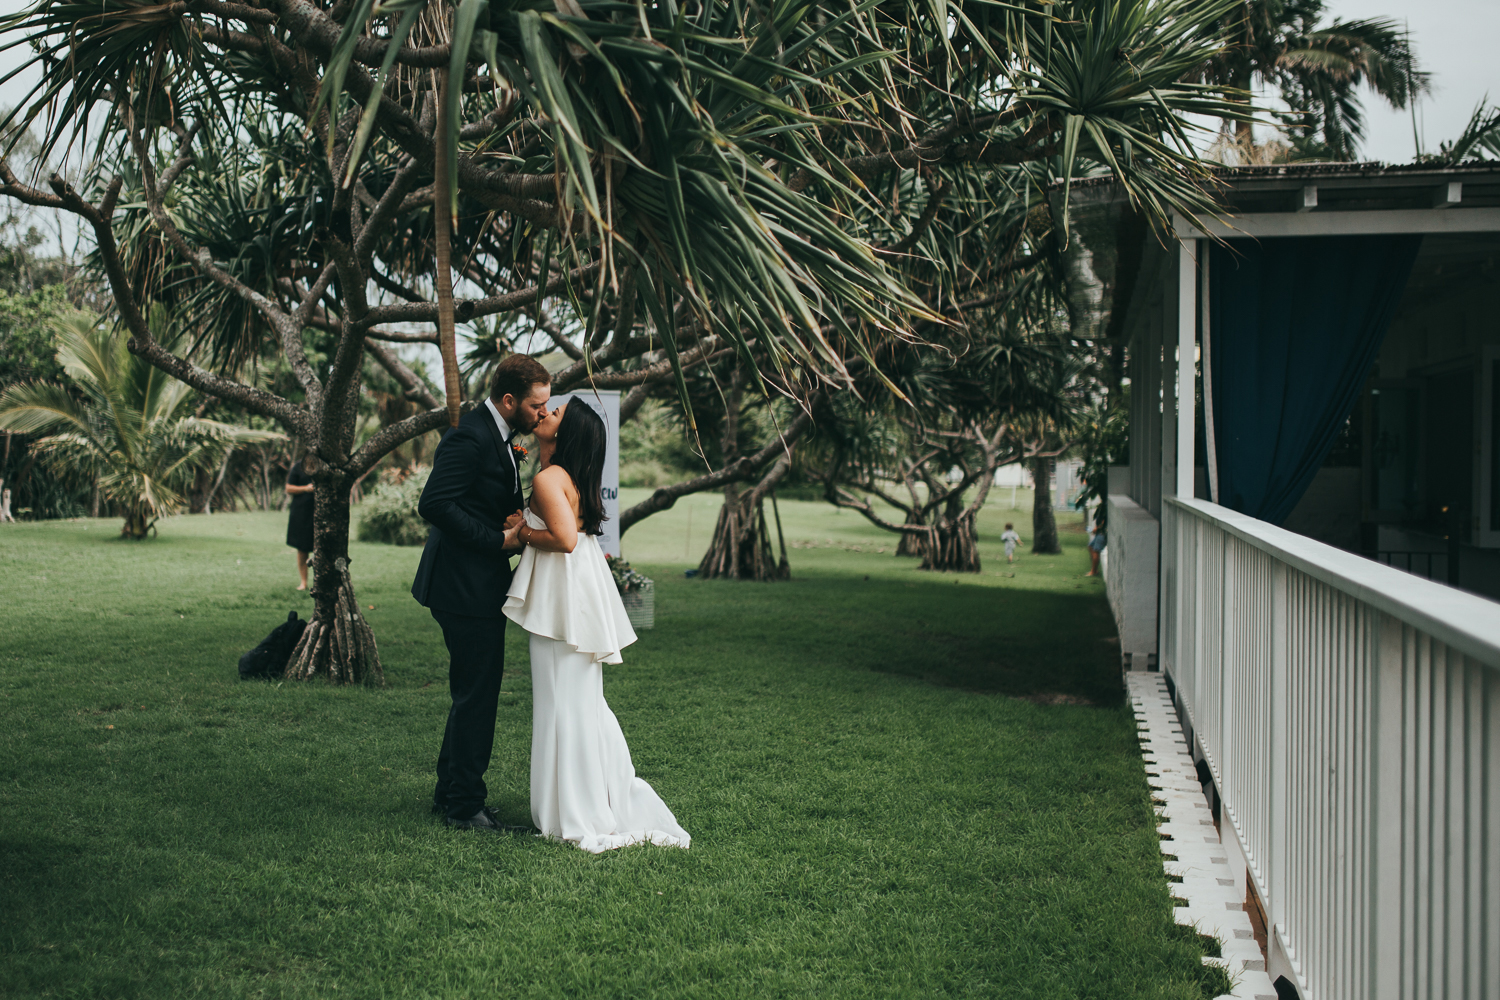 063-halcyon_house_byron_bay_wedding_photographer.jpg